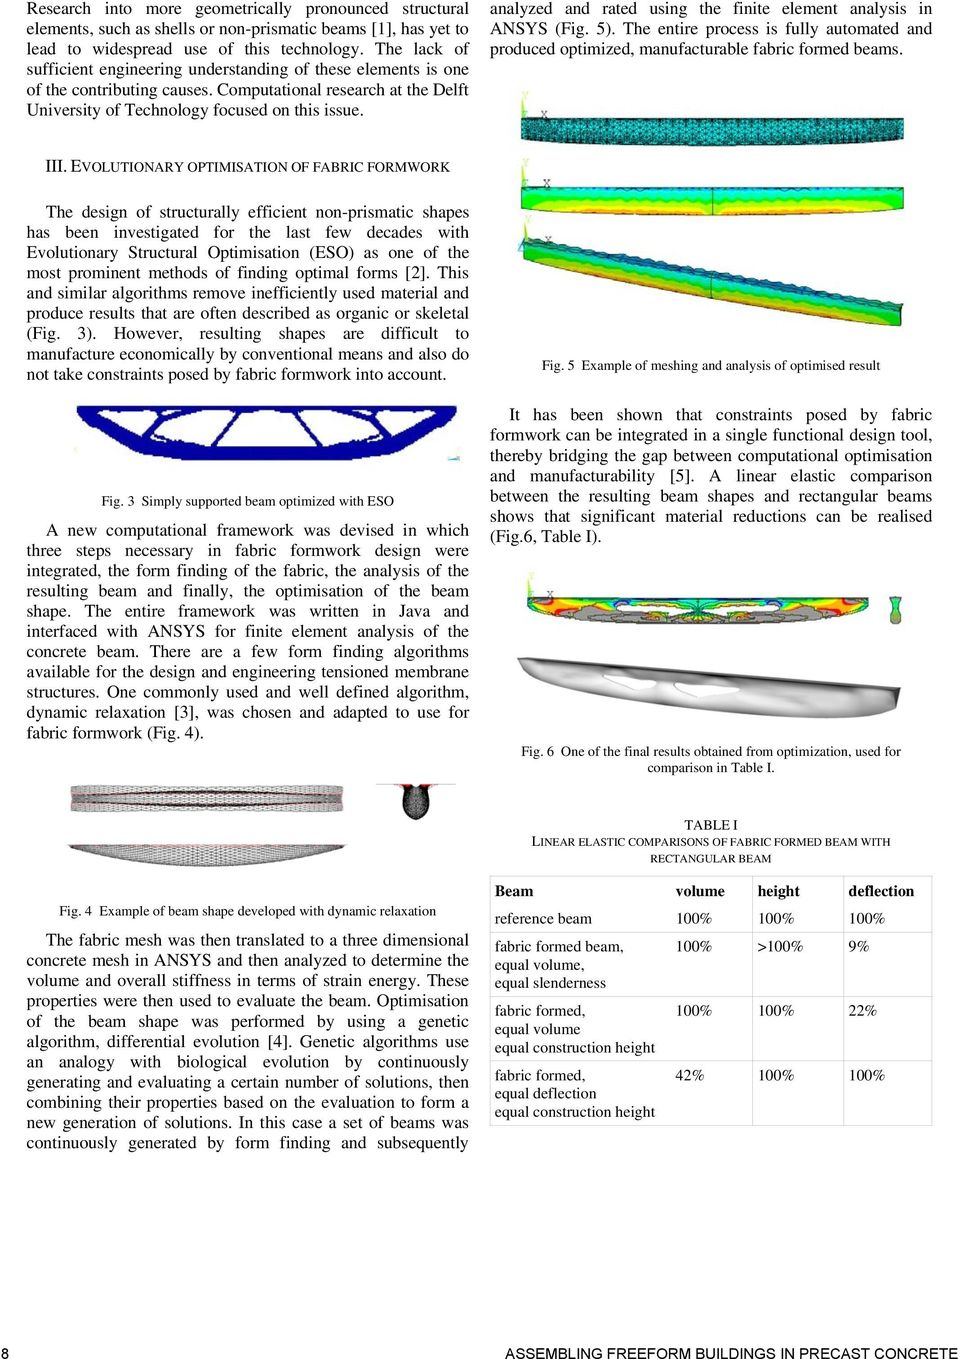 analyzed and rated using the finite element analysis in ANSYS (Fig. 5). The entire process is fully automated and produced optimized, manufacturable fabric formed beams. III.